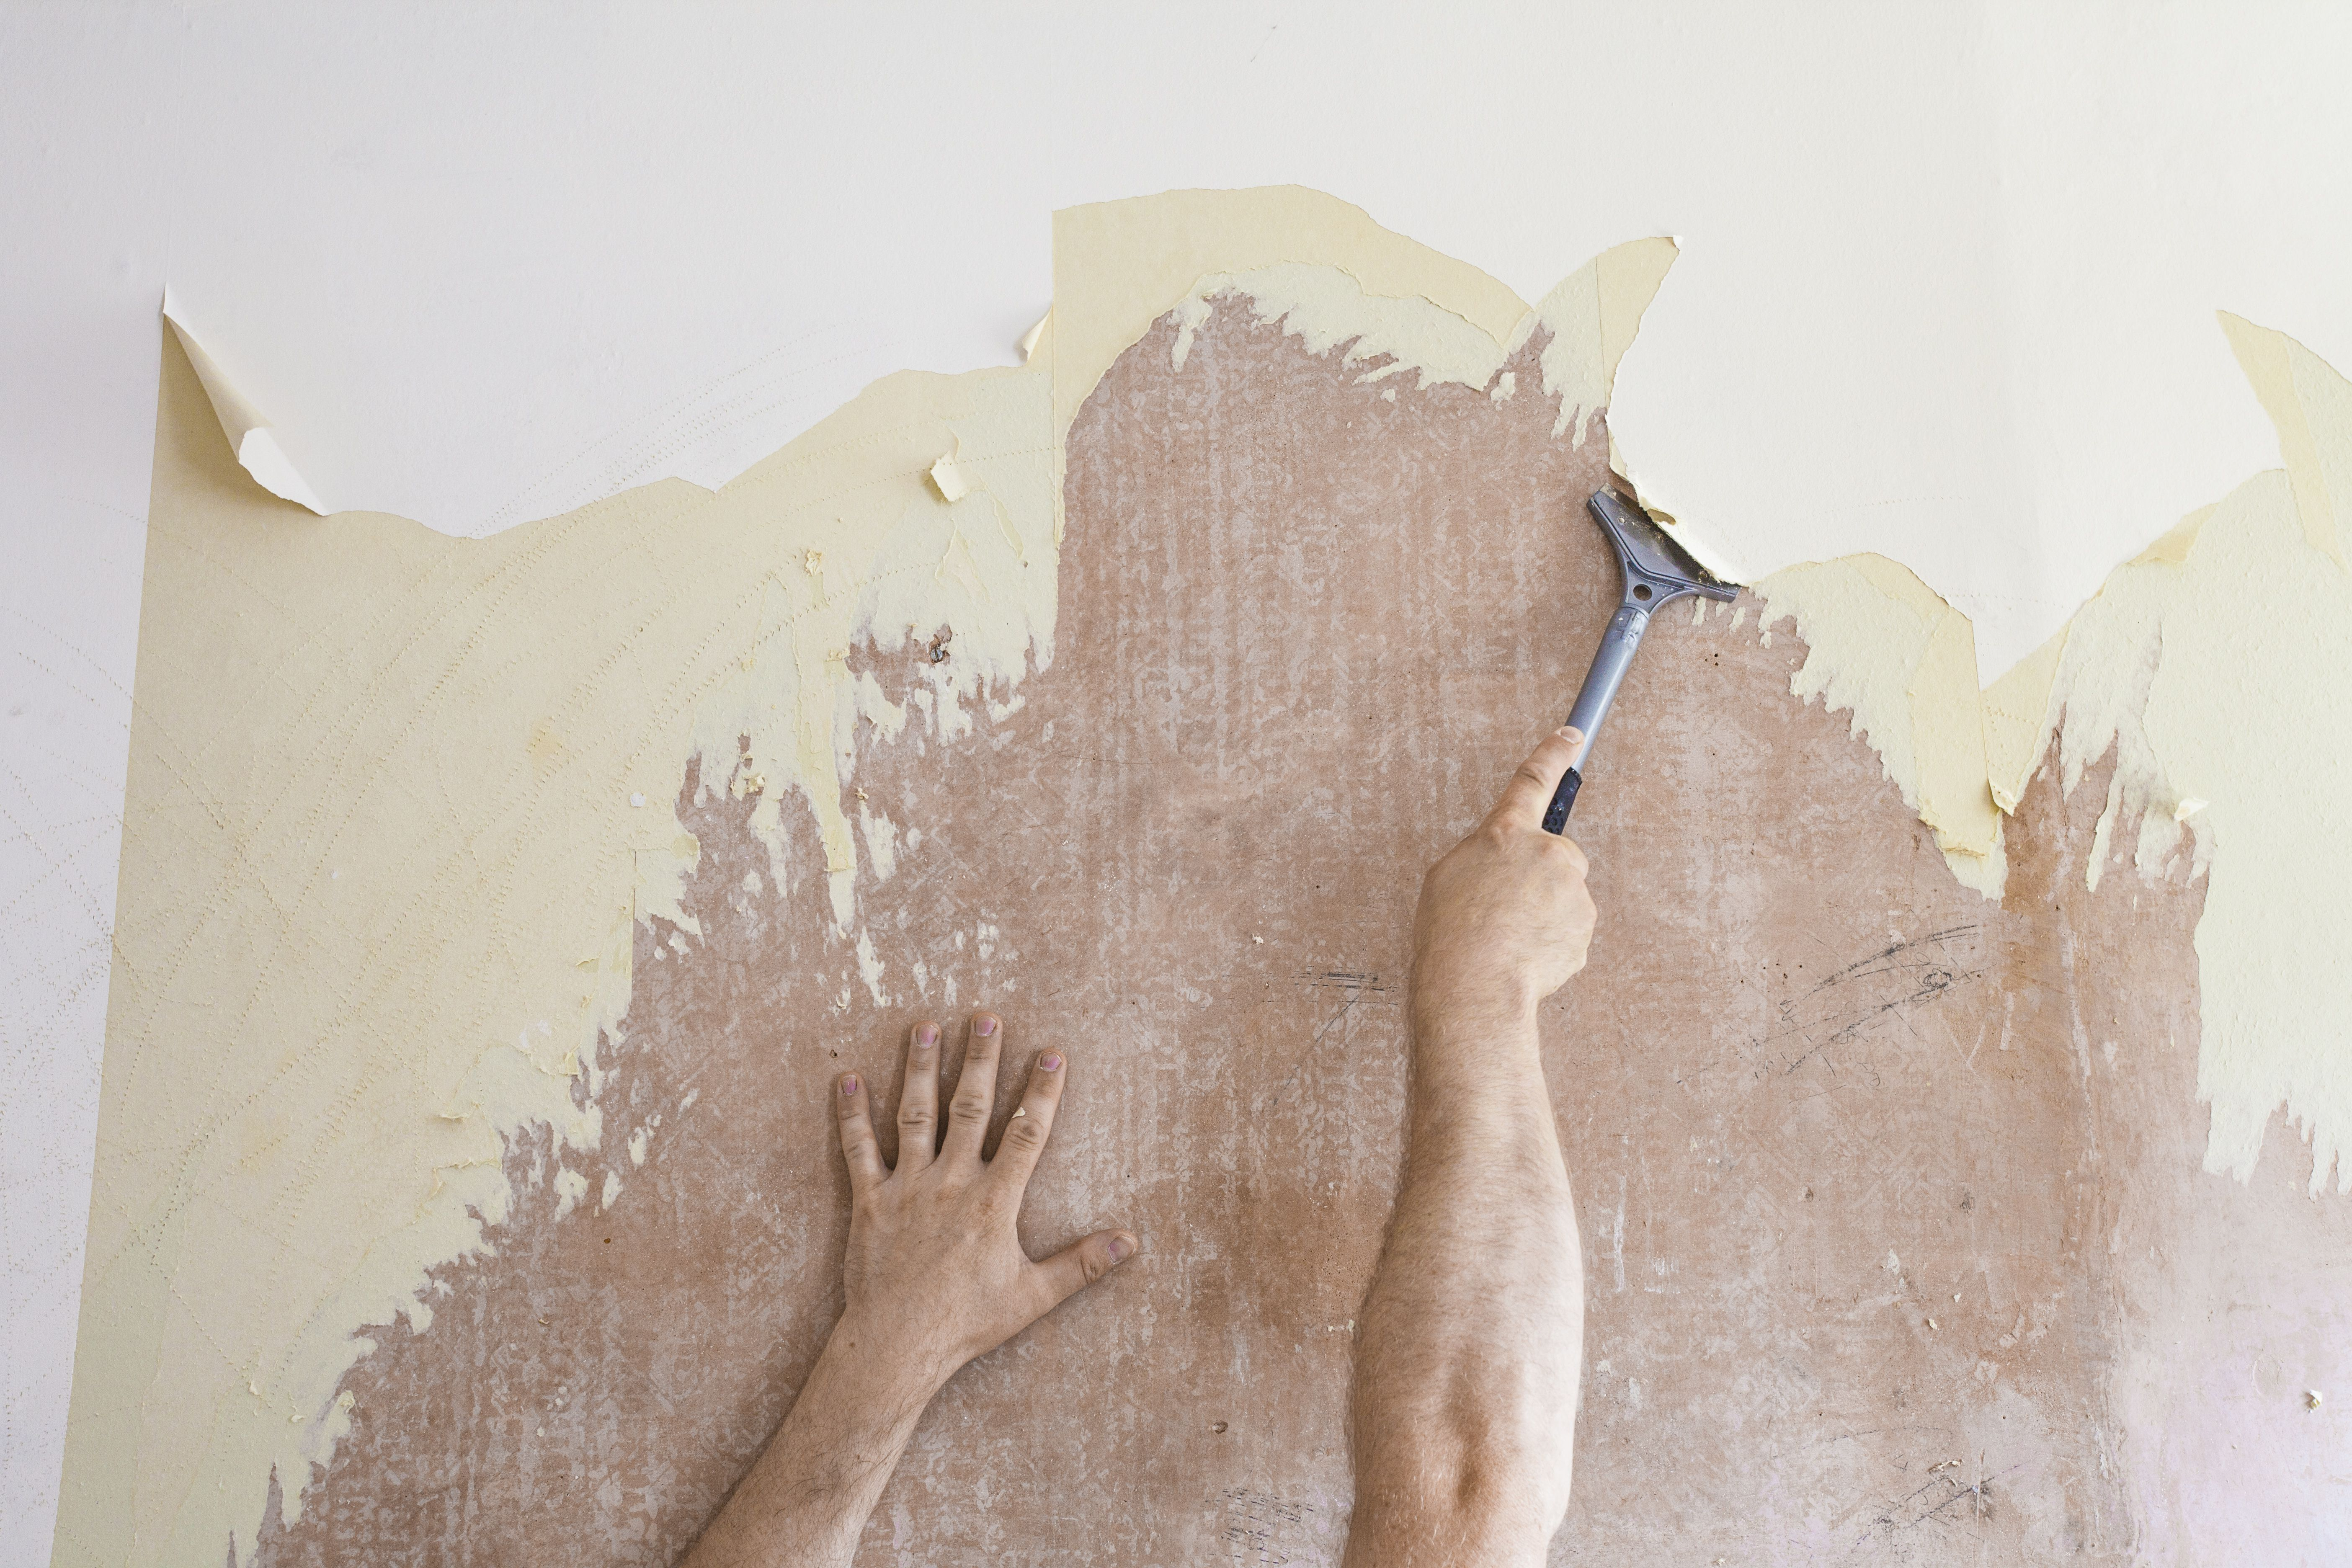 Discover The Easy Frugal Way To Remove Wallpaper Removing Old Wallpaper Homemade Wallpaper Old Wallpaper